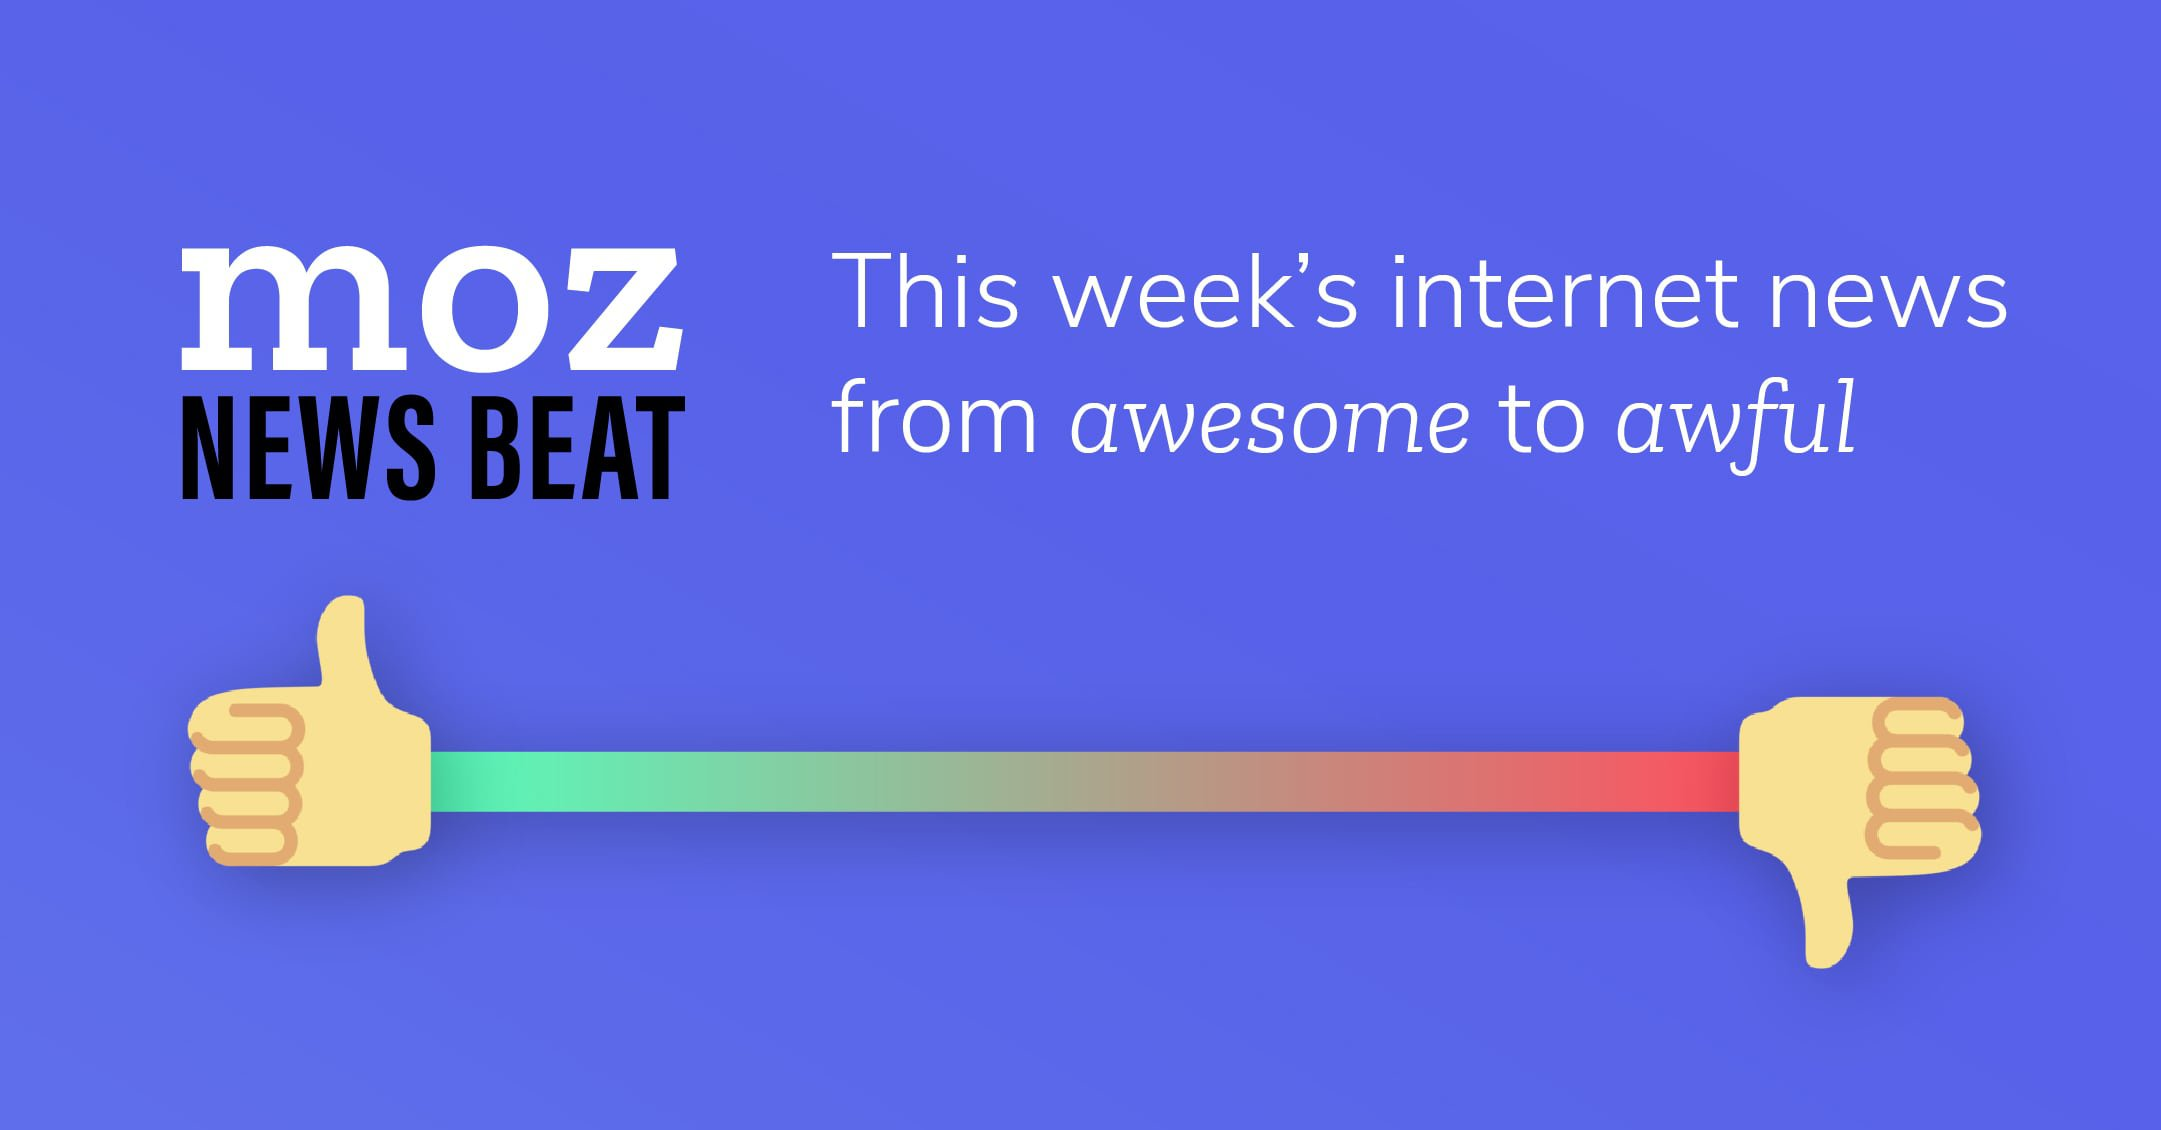 Moz News Beat -- This week's internet news from awesome to awful